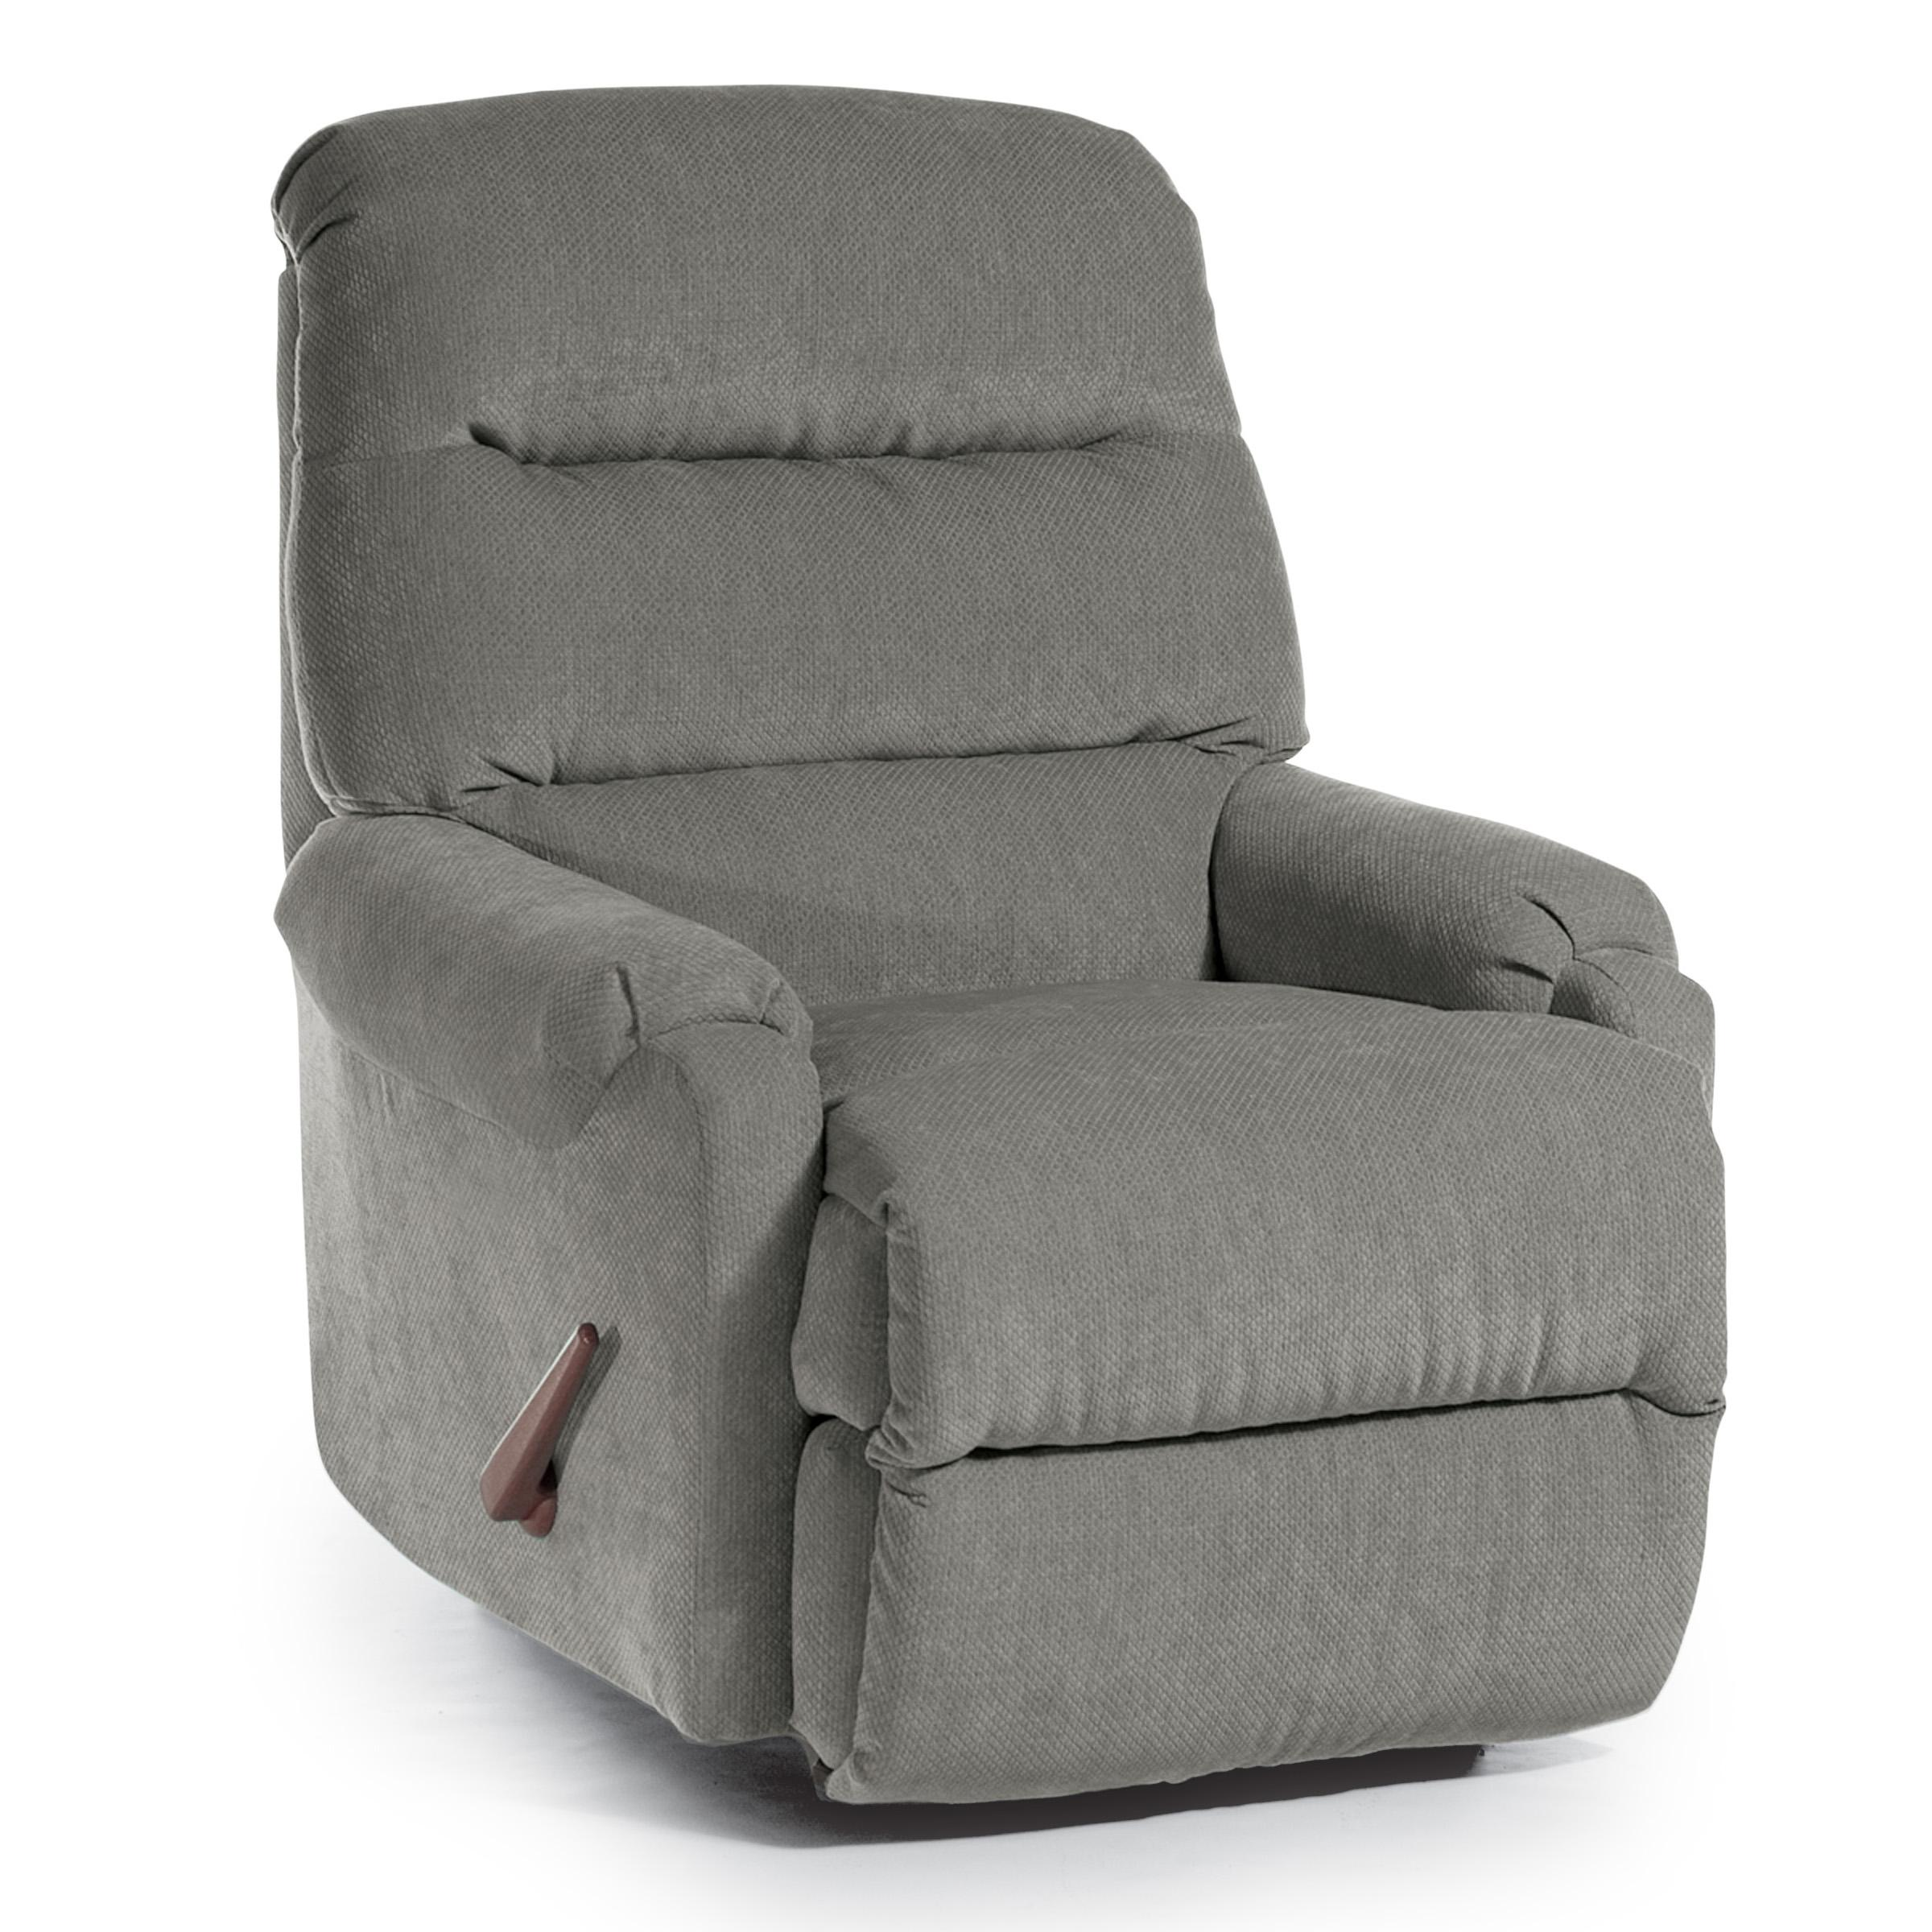 Medium Recliners Sedgefield Power Rocker Recliner by Best Home Furnishings at Godby Home Furnishings